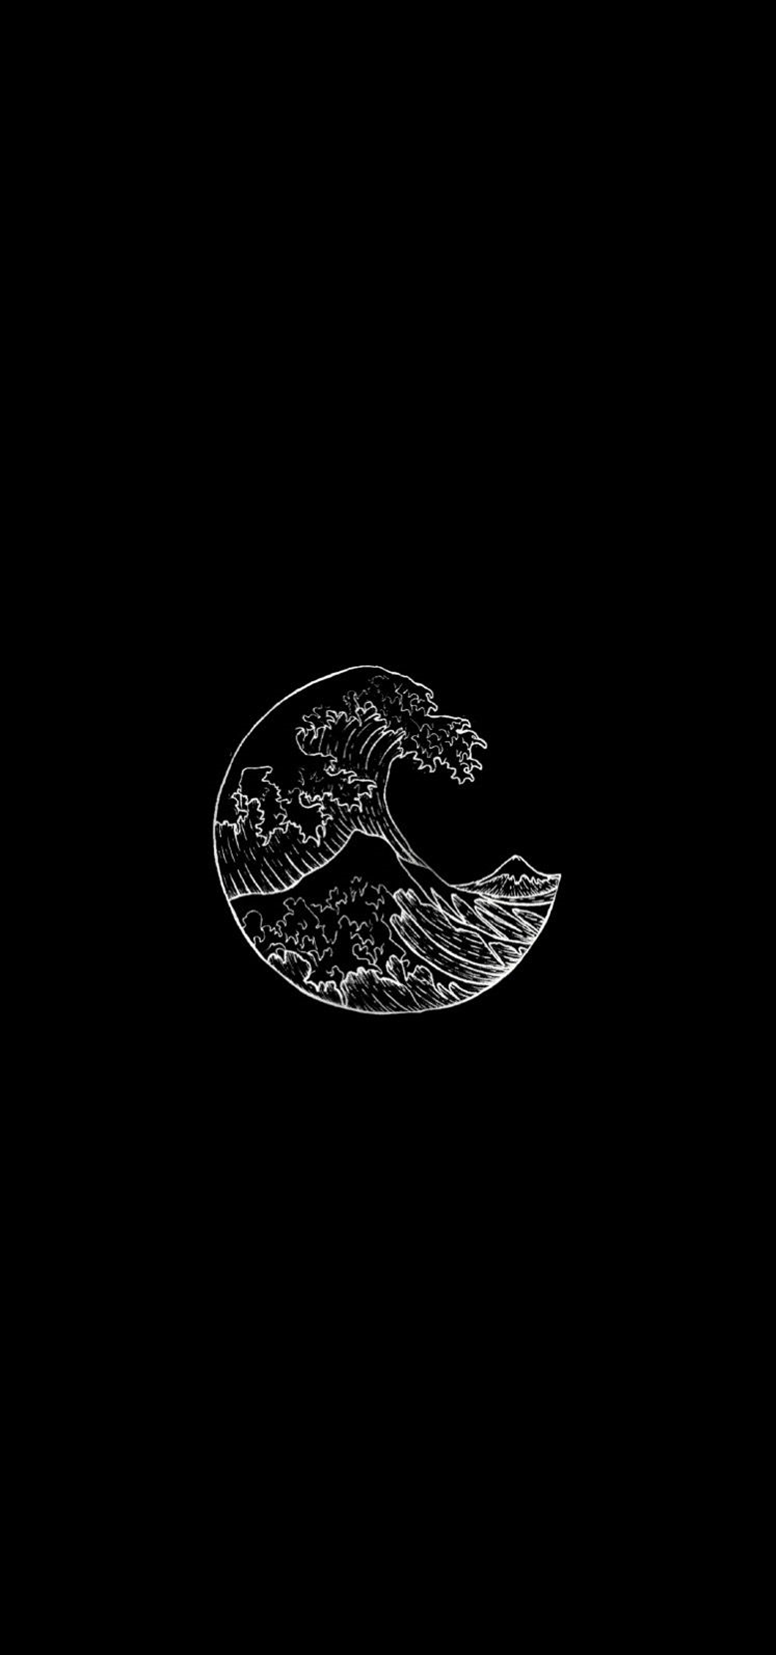 Deep Meaning Aesthetic Edgy Black And White Wallpaper